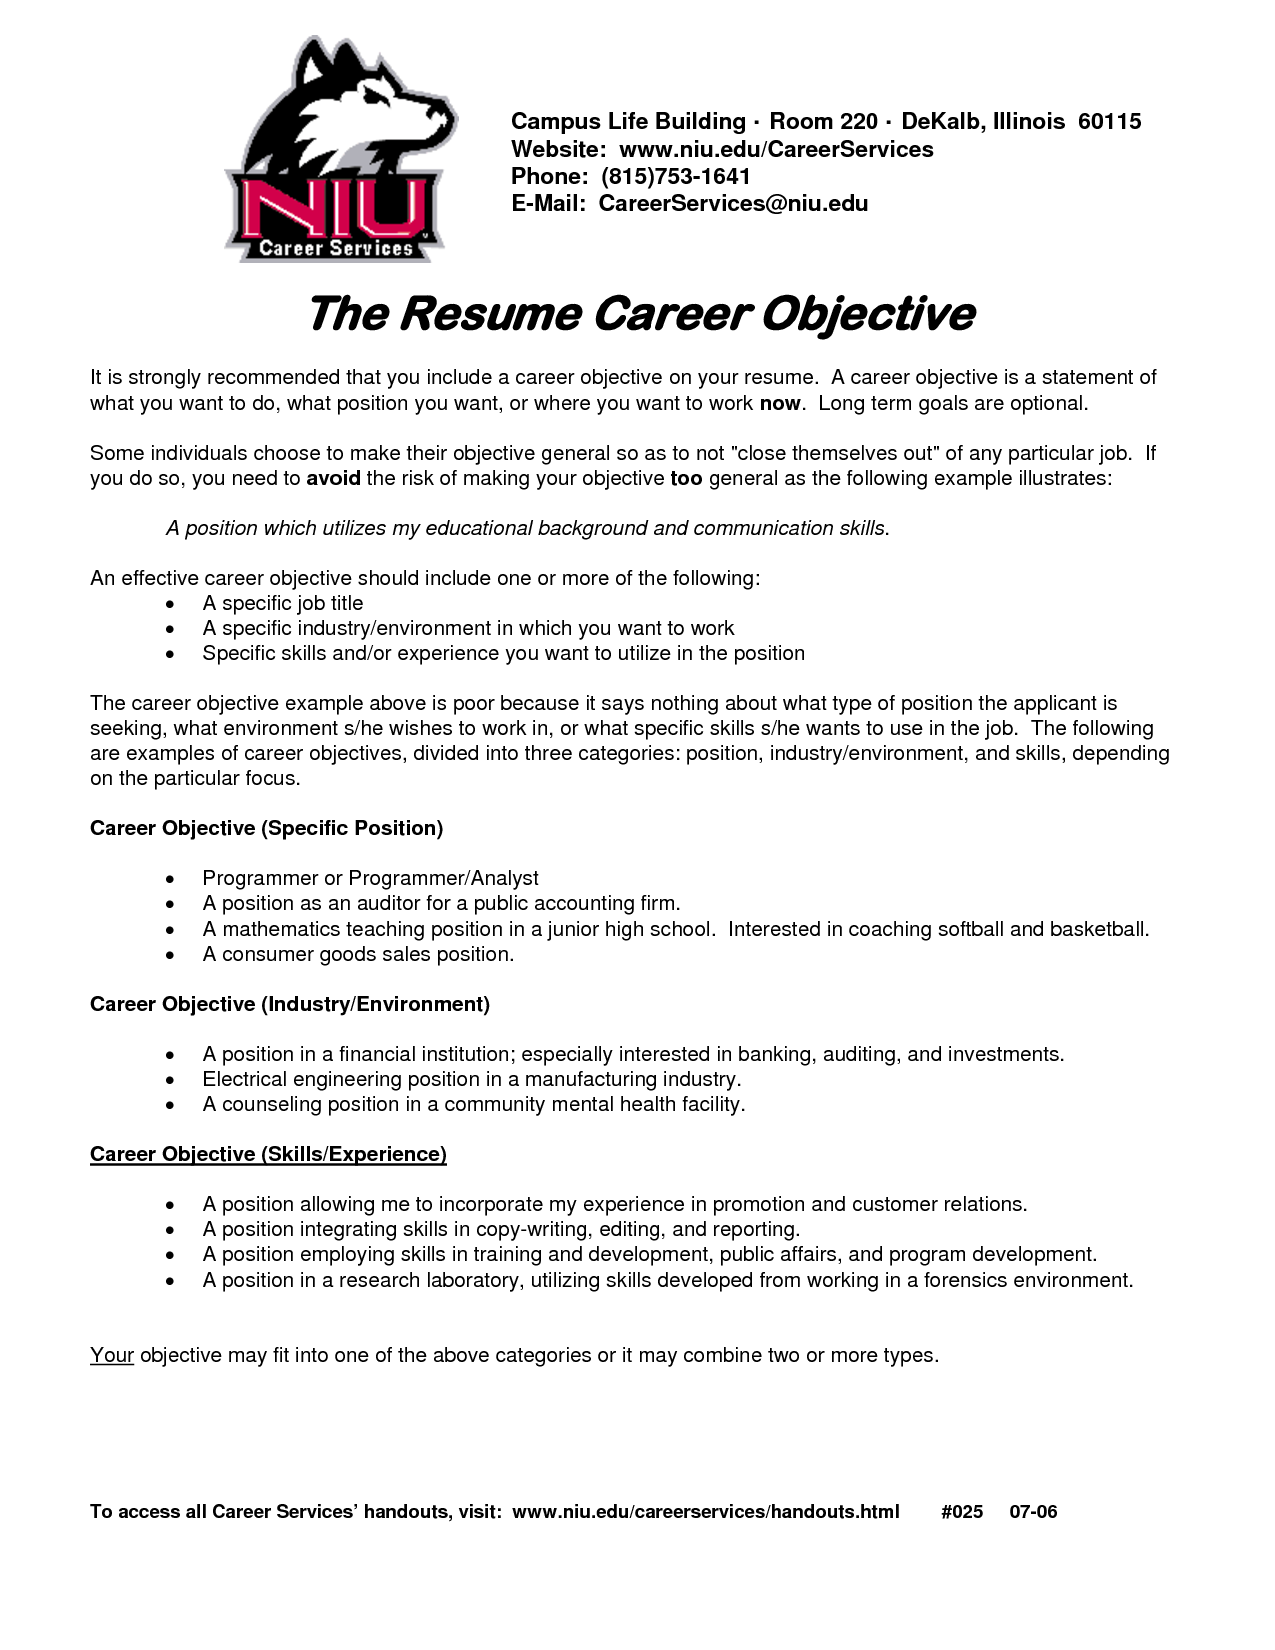 Objective Examples For Resume Httpswwwgooglesearchqobjective Resume  Resume